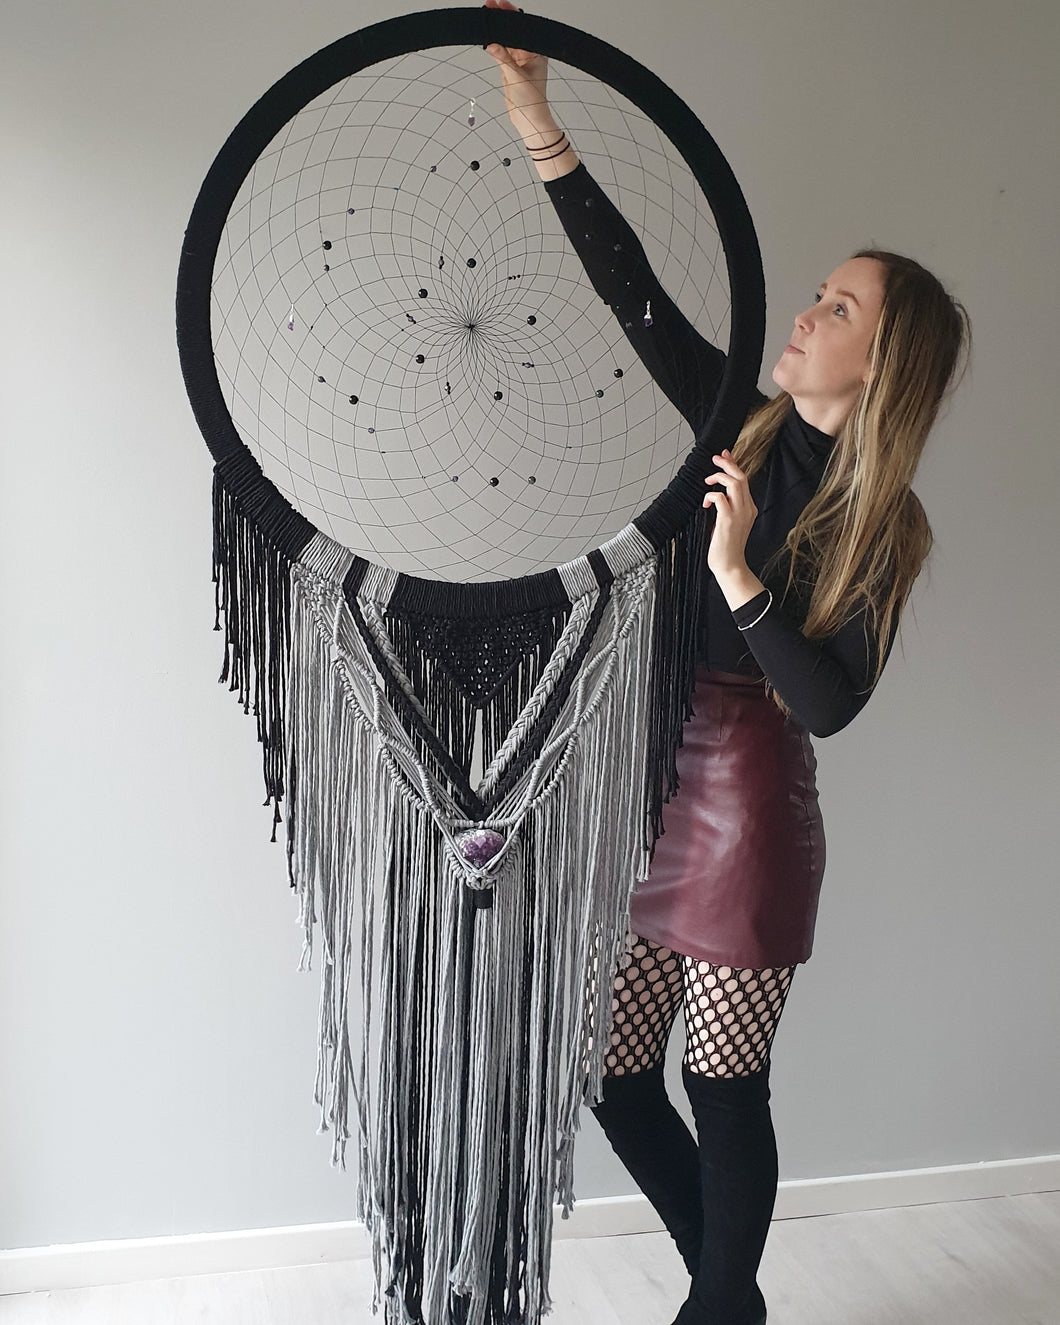 Makkala Huge dreamcatcher with amethyst